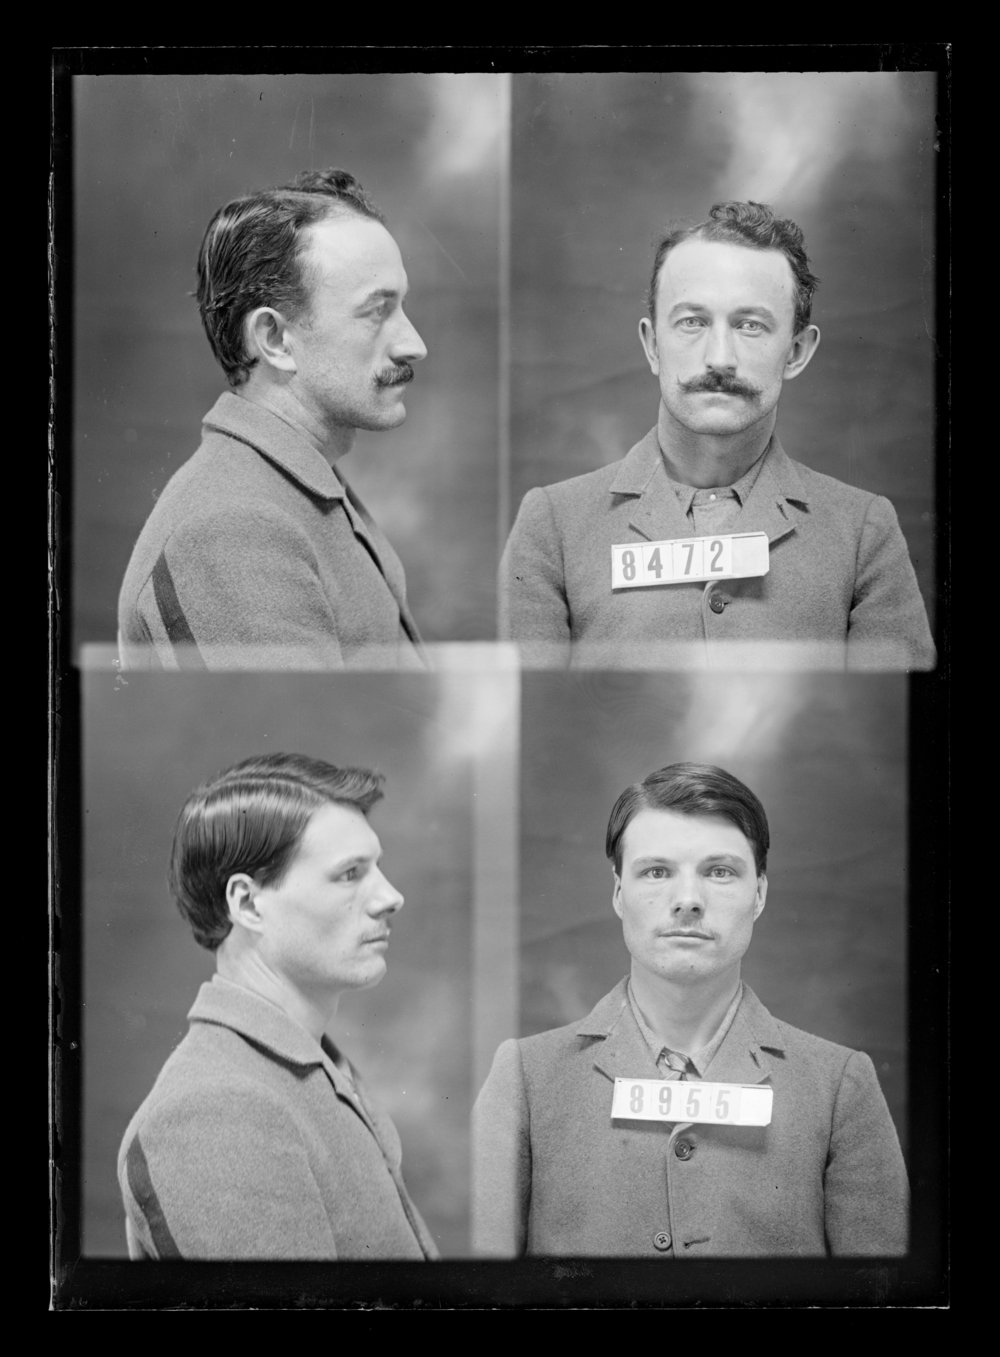 Lee Case and Stonewall Shacklett, prisoners 8955 and 8472